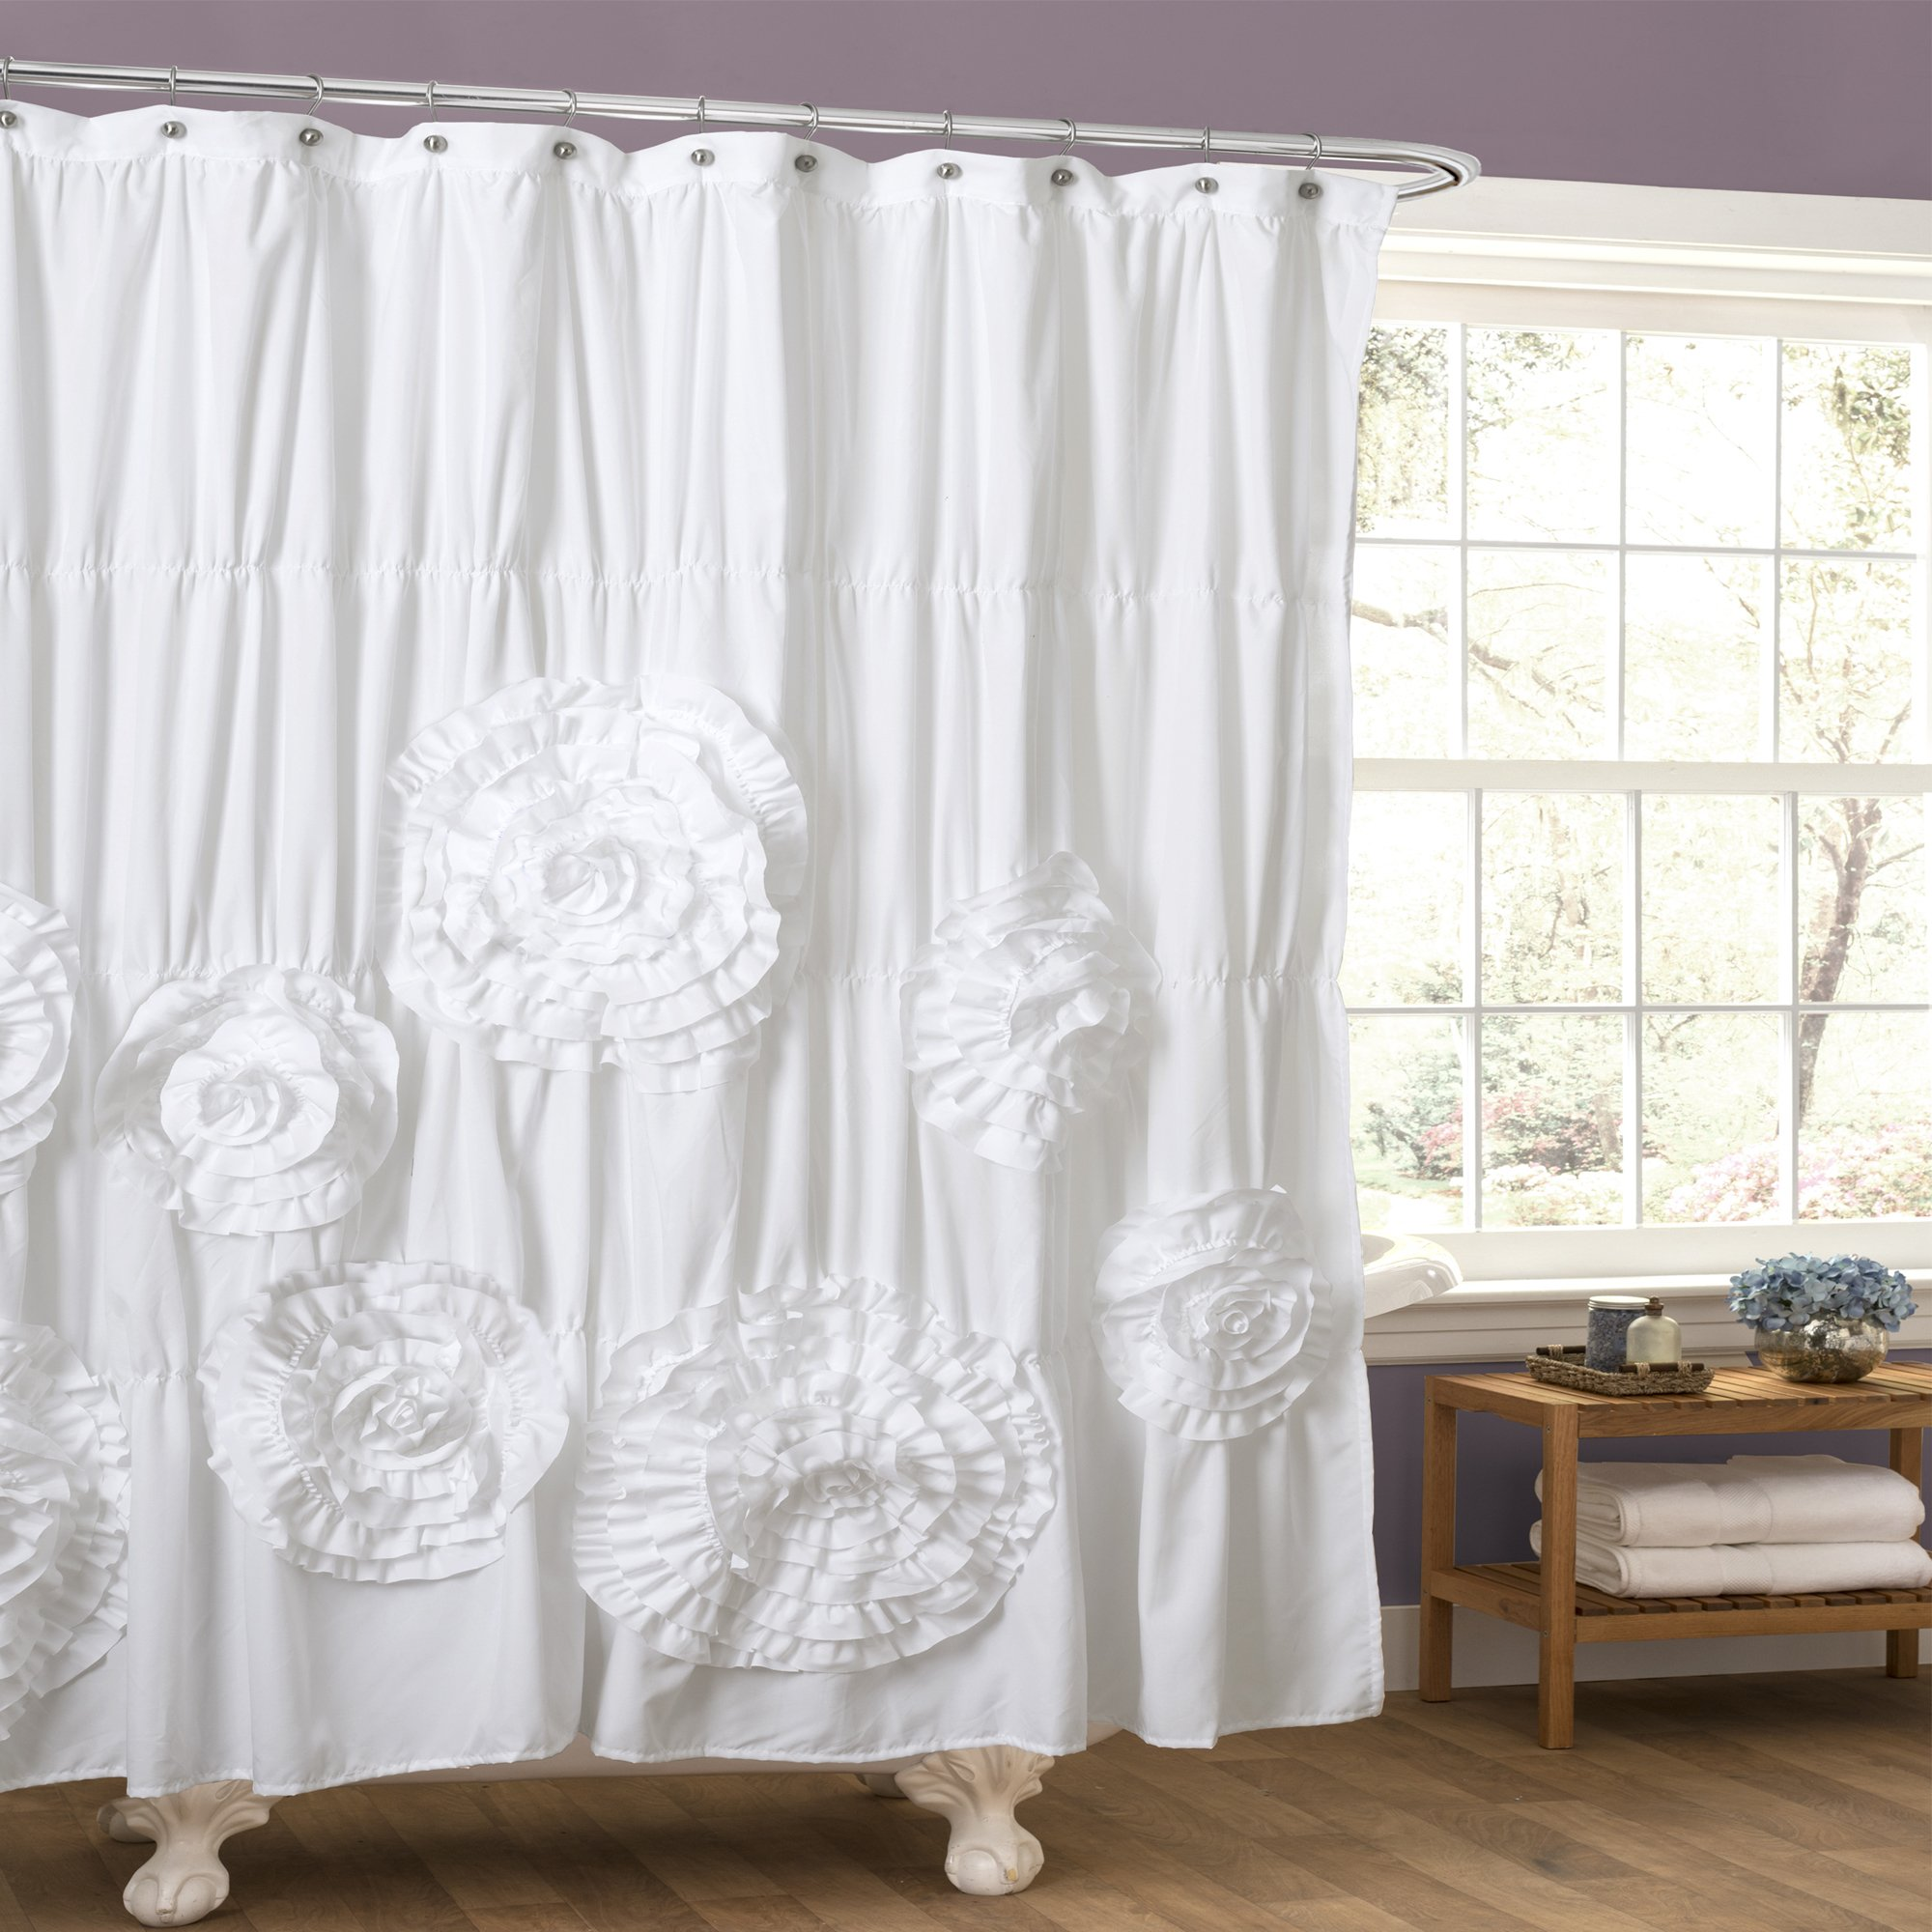 Details About Elegant Shower Curtain White Shabby Chic Flower Bohemian Ruffle Anthropologie